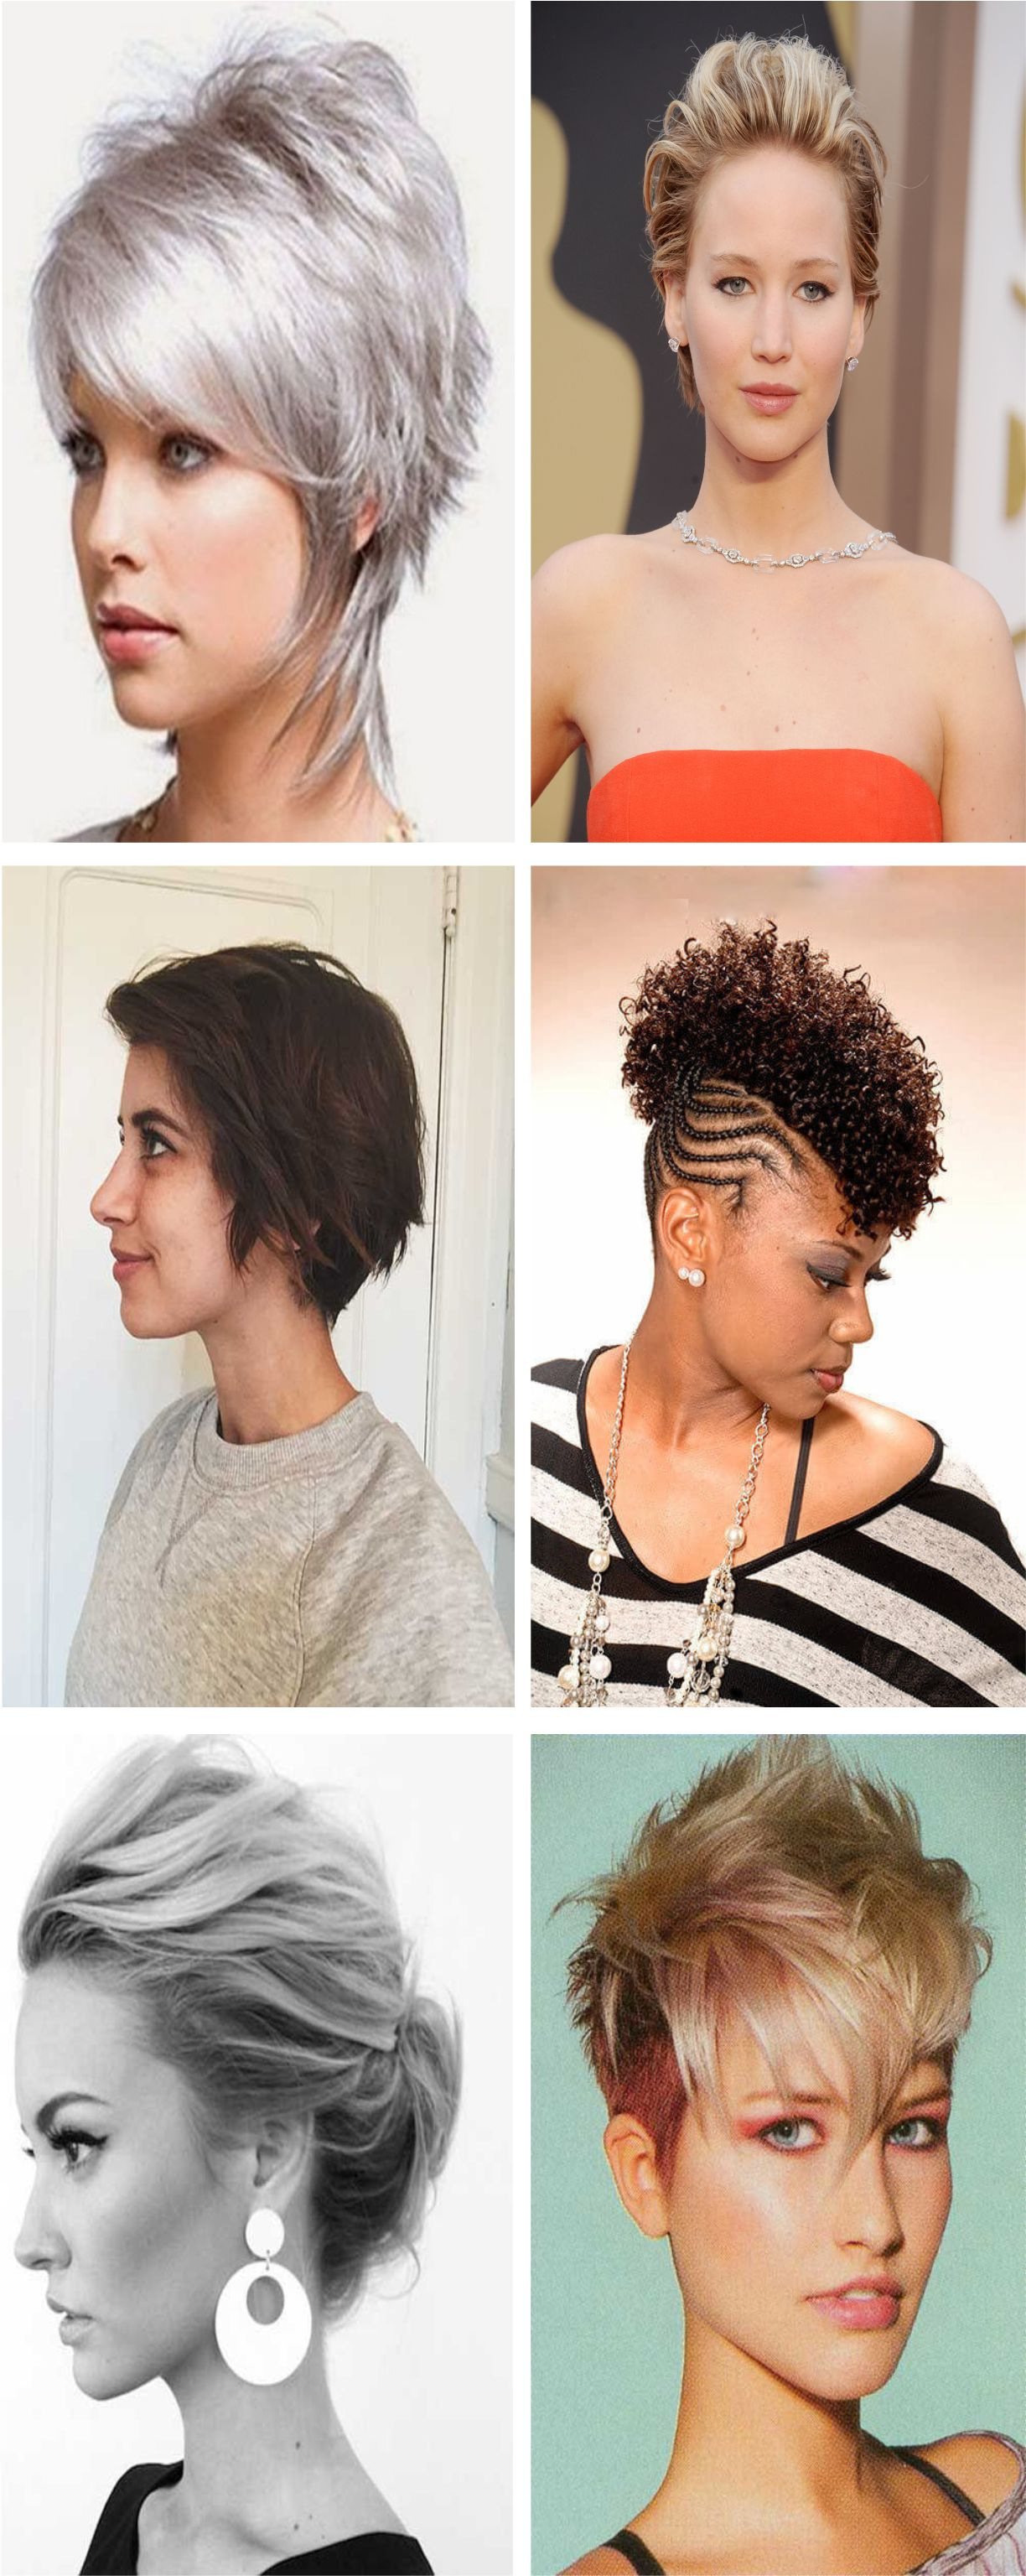 Gorgeous hairstyles for short hair women